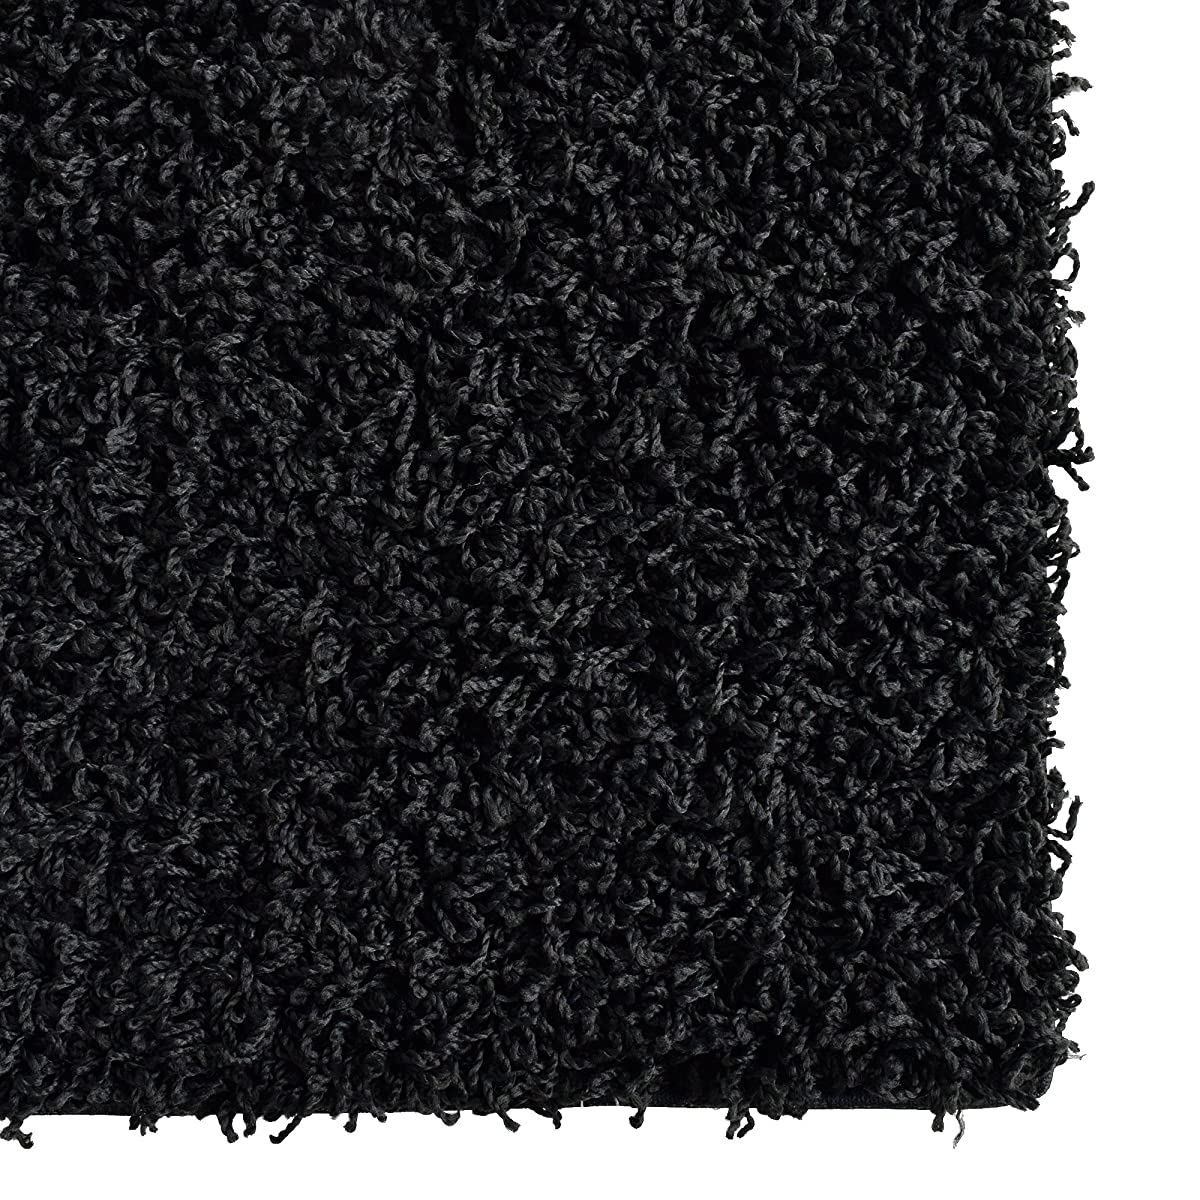 iCustomRug Dixie Cozy Soft And Plush Pile, 5ft0in x 7ft0in (5X7) Shag Area Rug In Black